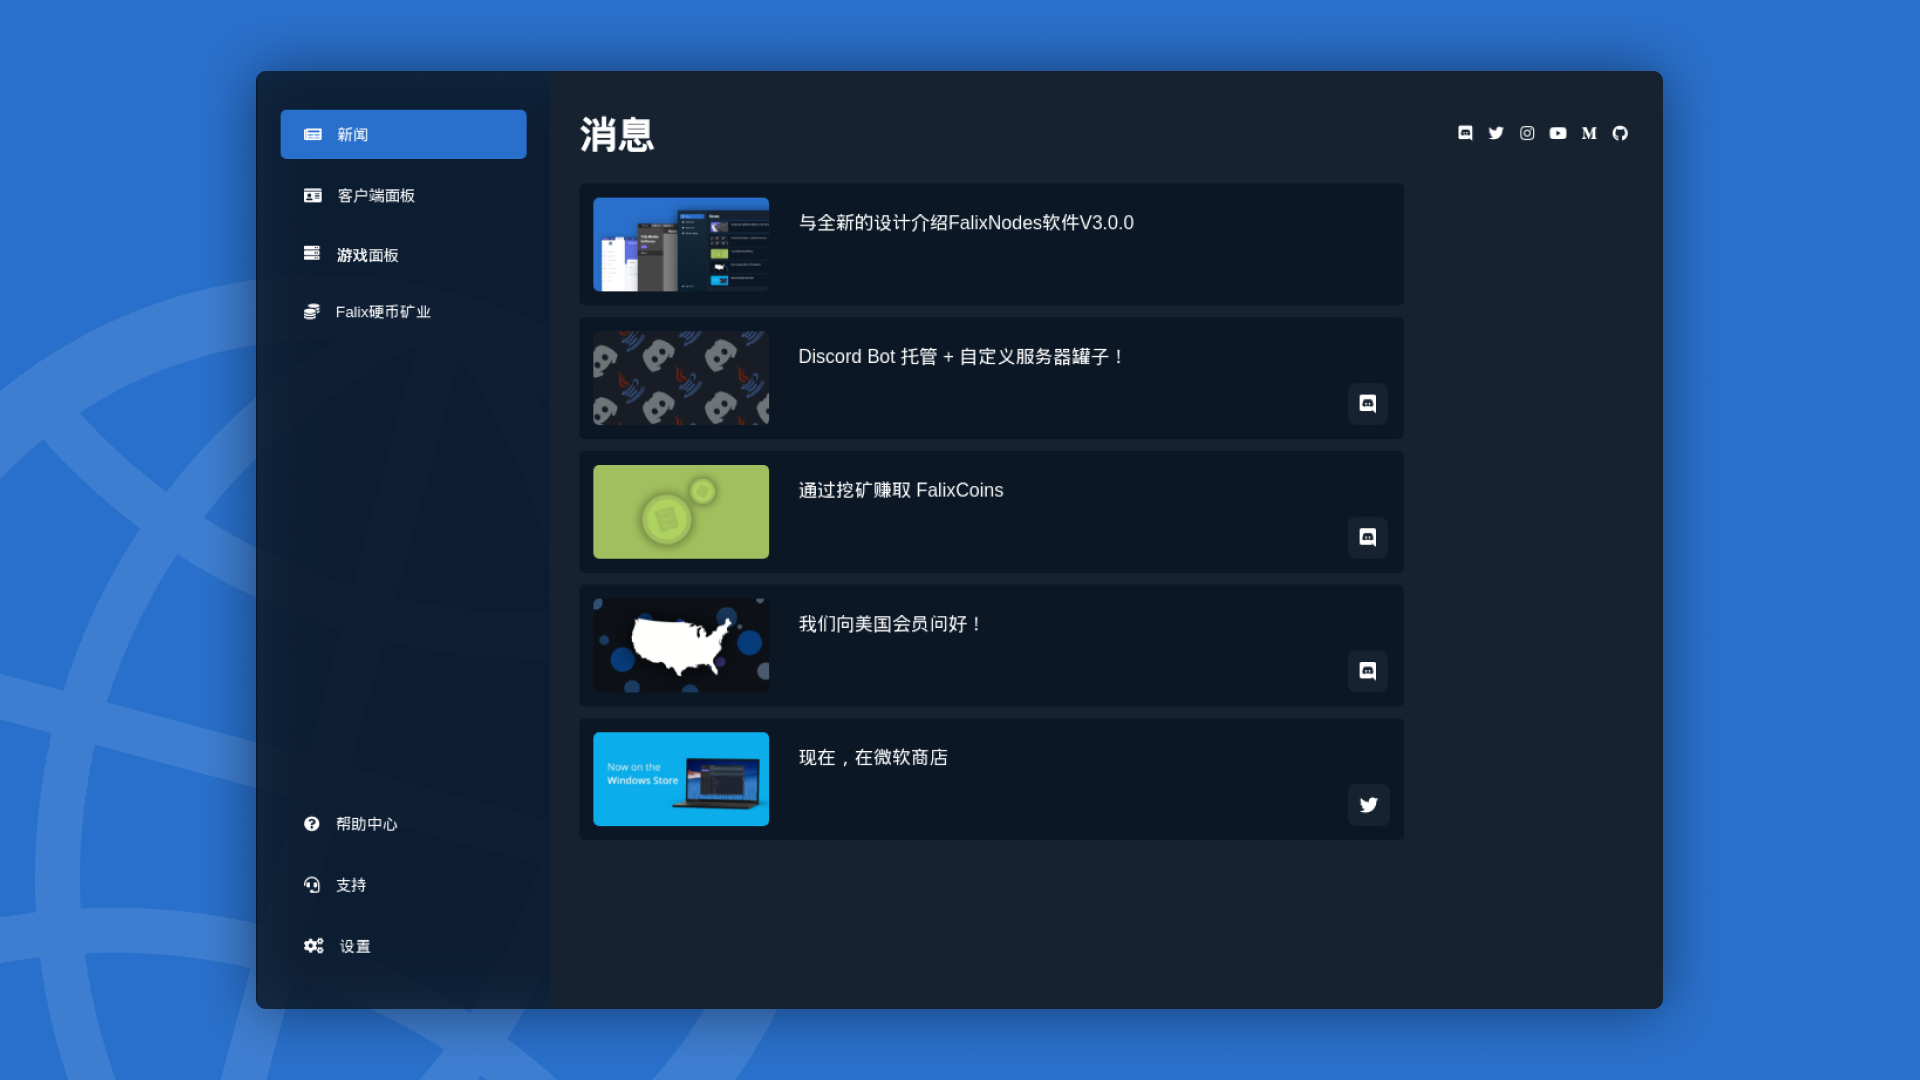 The Falix Software with News tab selected, set to the Chinese language.